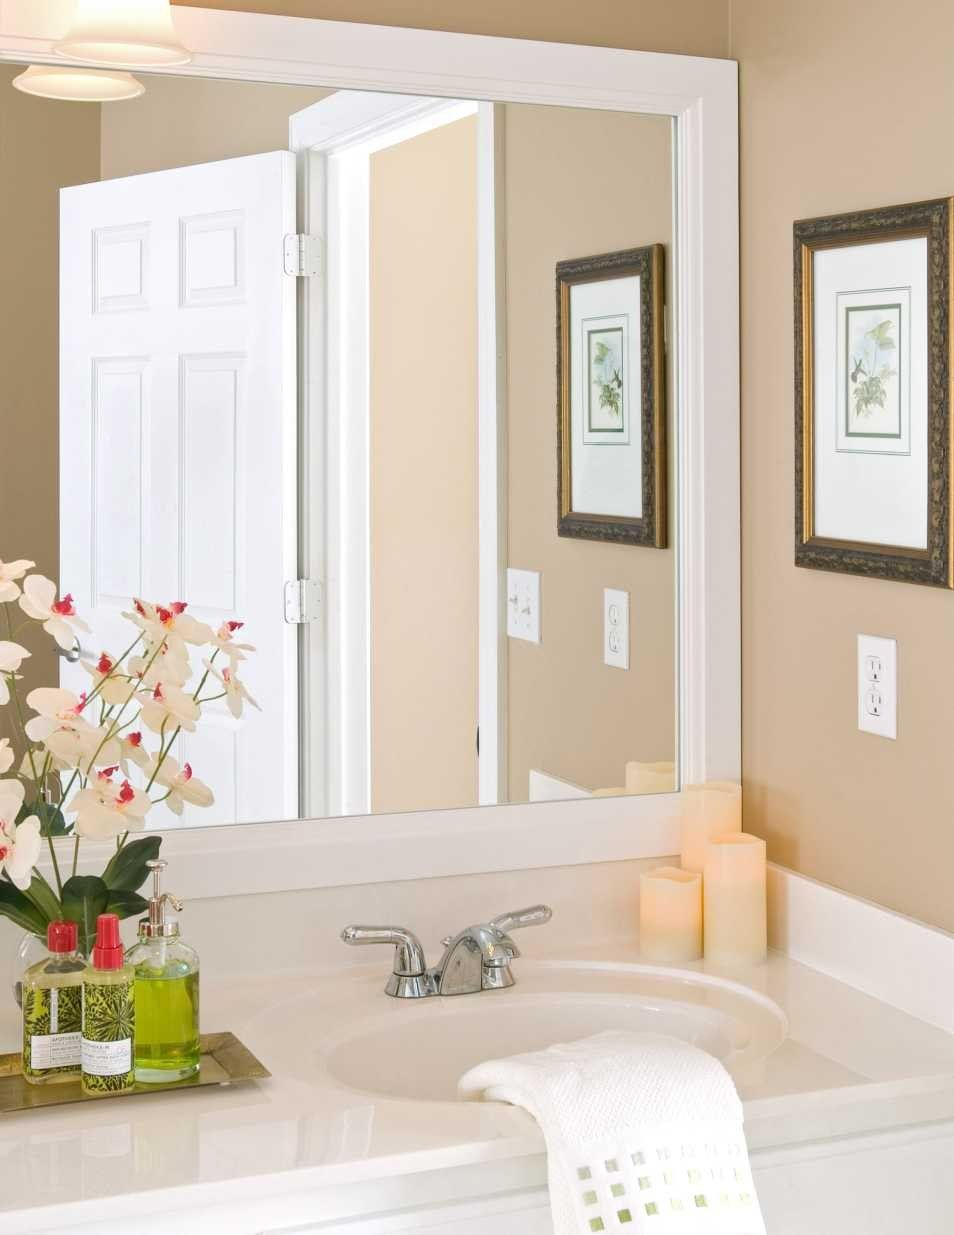 bathroom mirror decorative home framed framing mirrors